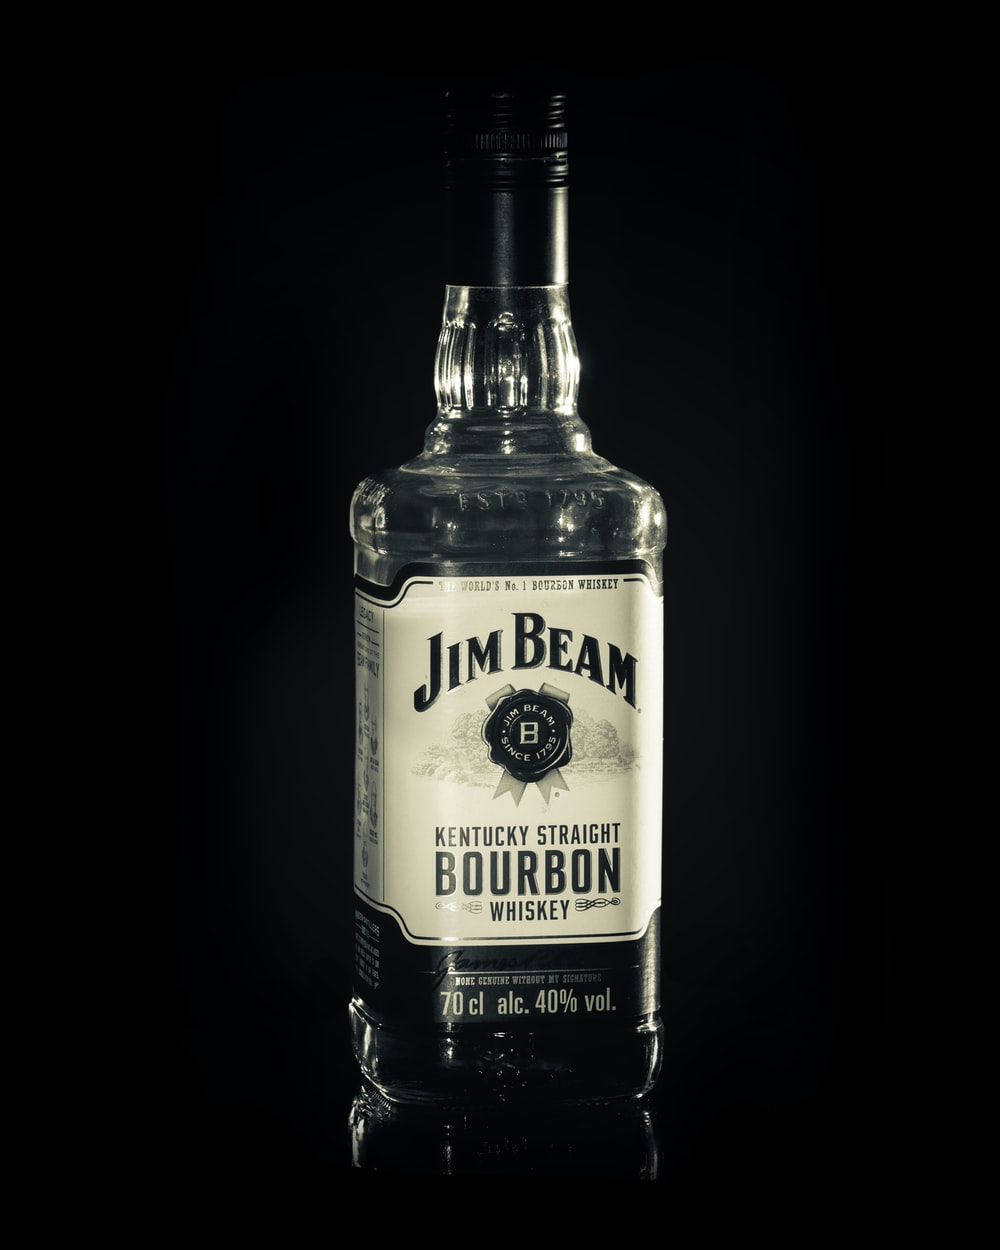 Jim Beam Bourbon bottle